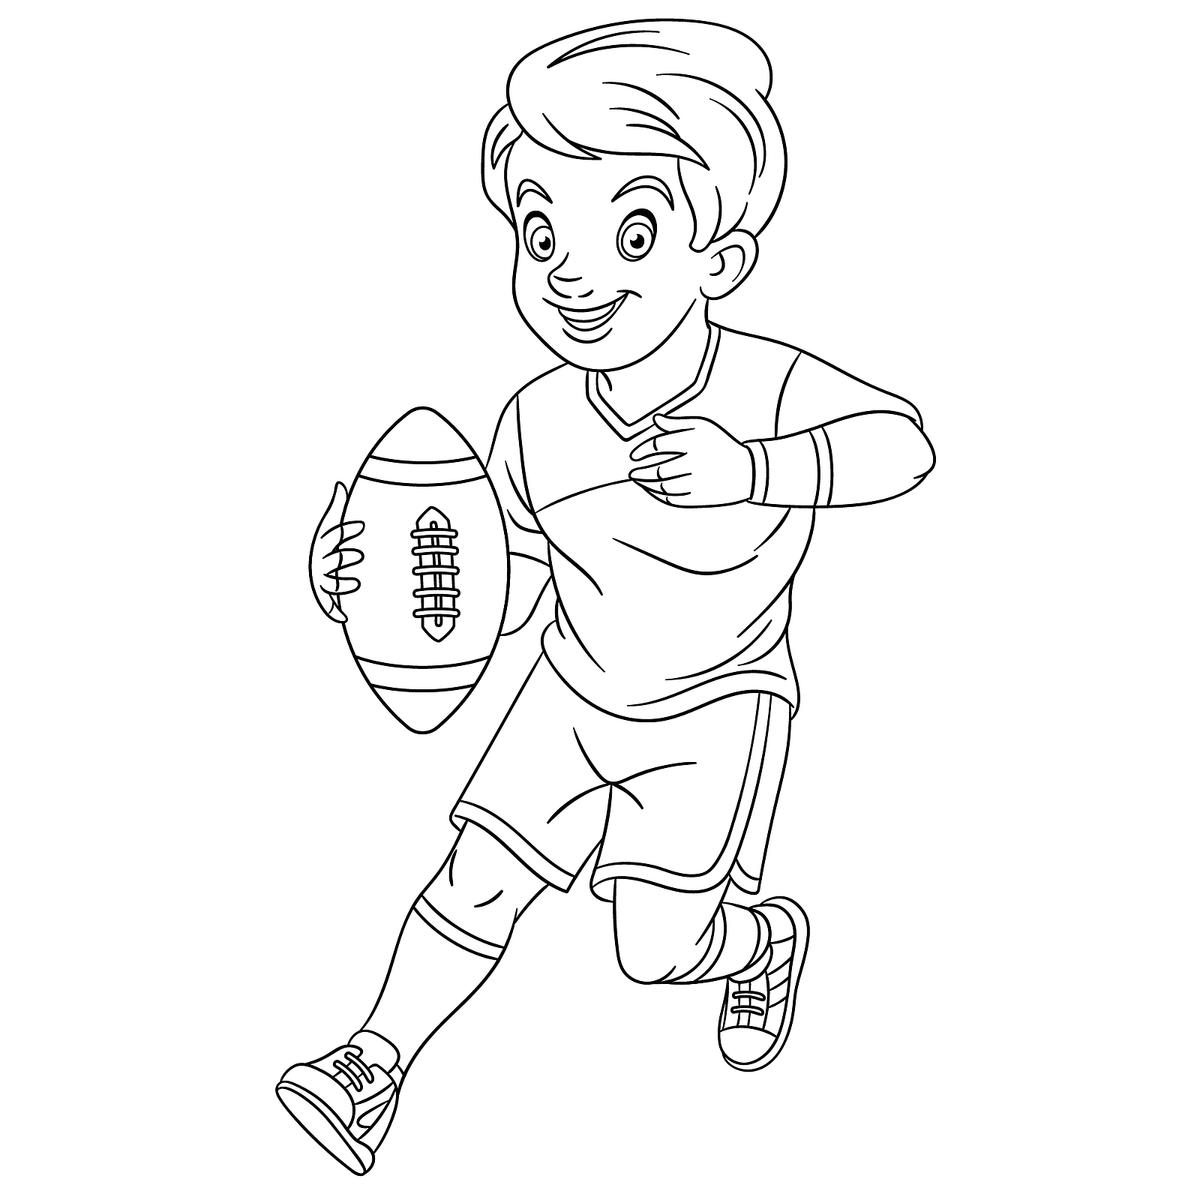 Football Coloring Pages: Printable Sports Coloring